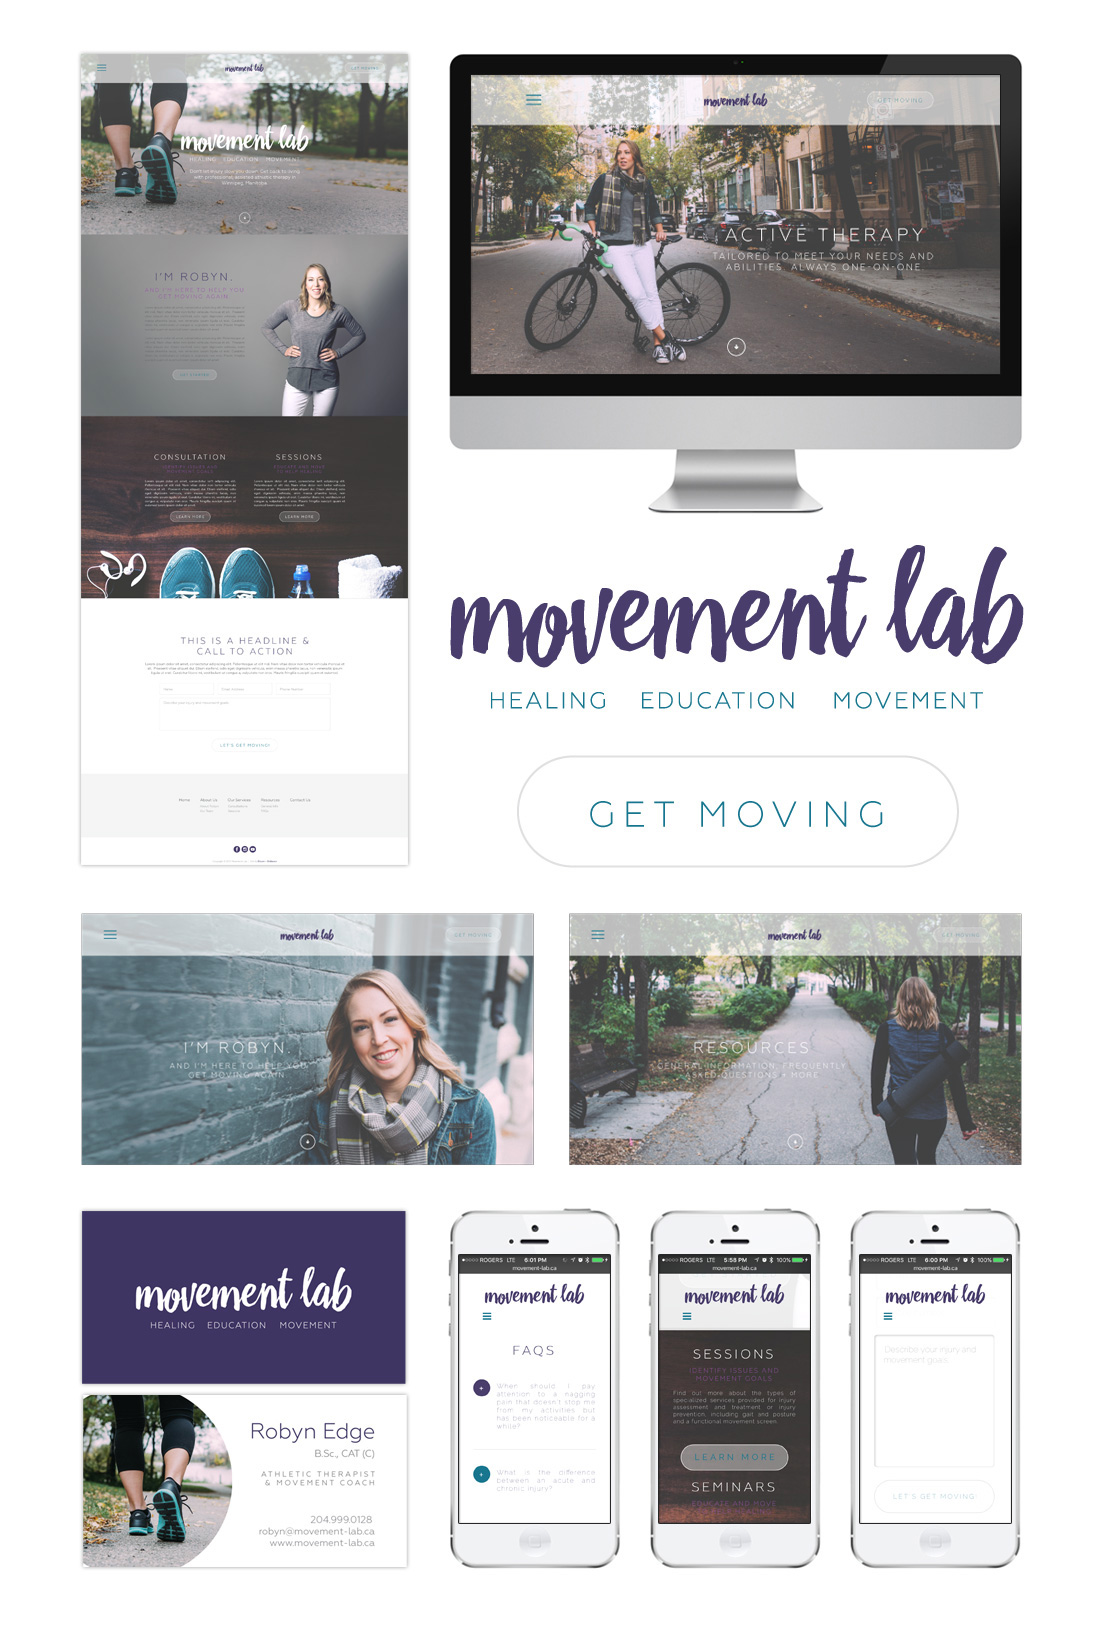 movement-lab-winnipeg-responsive-website-design-branding-boards